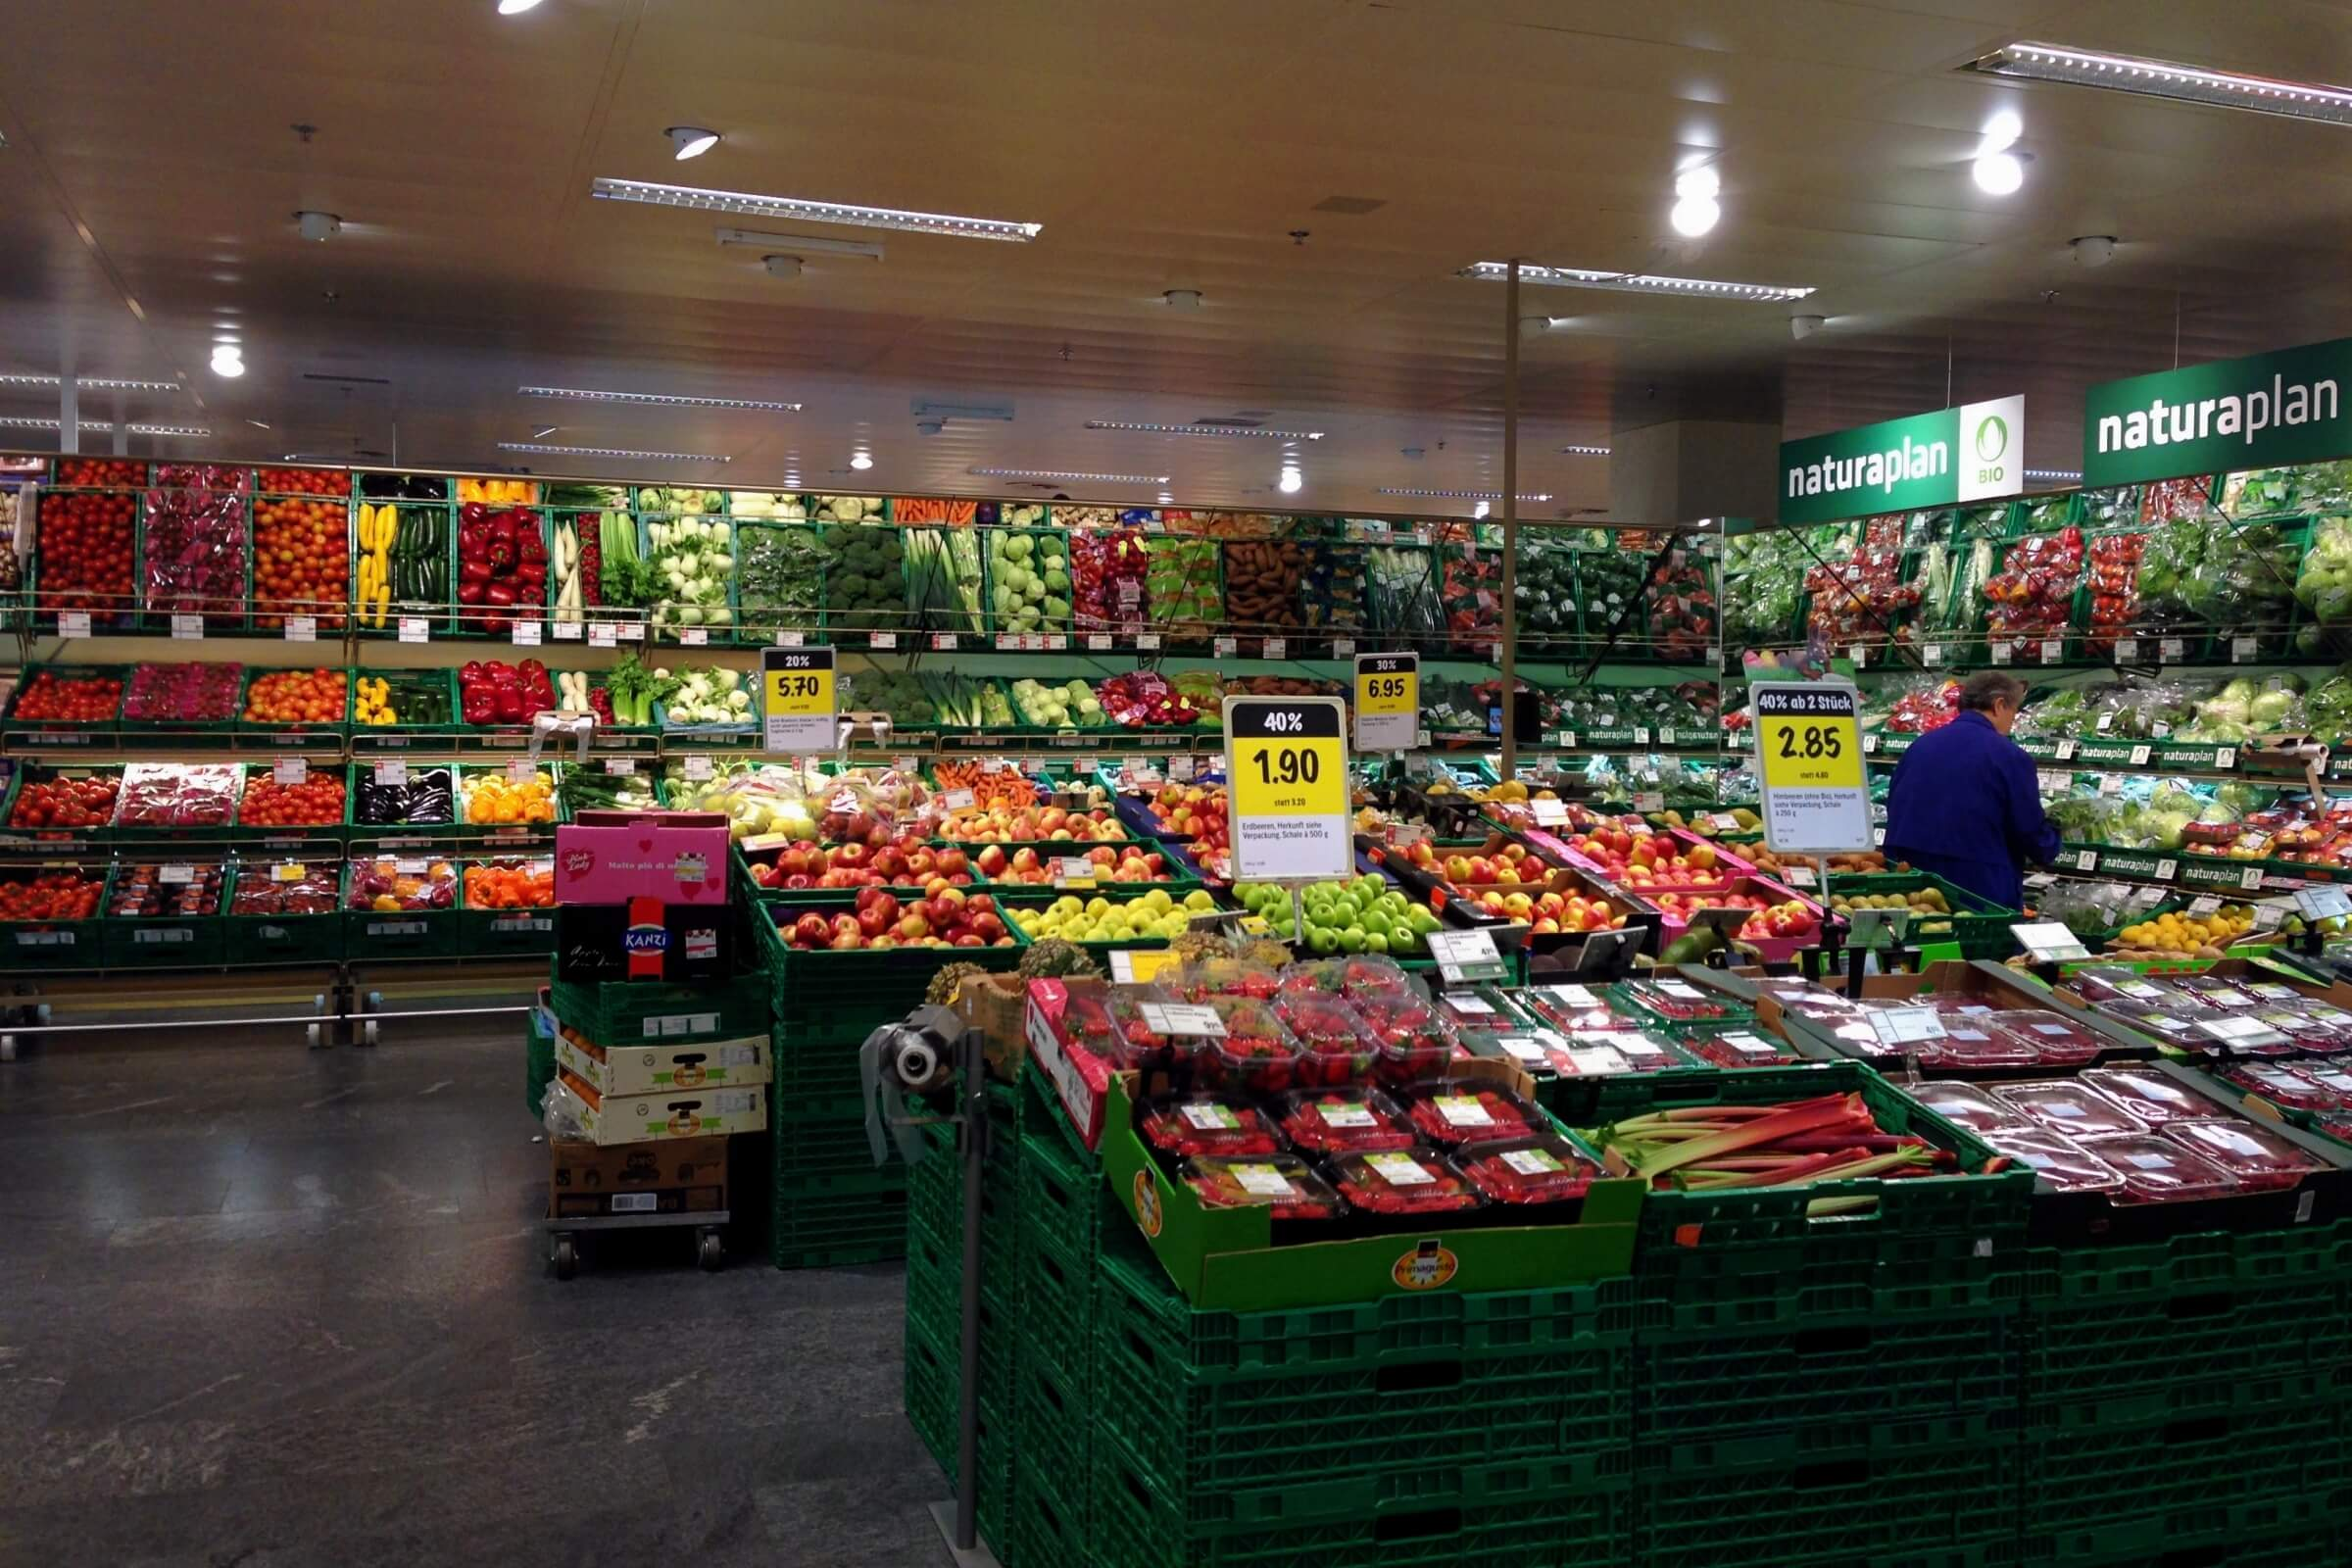 Supermarkets 101 – How to get your groceries in Switzerland